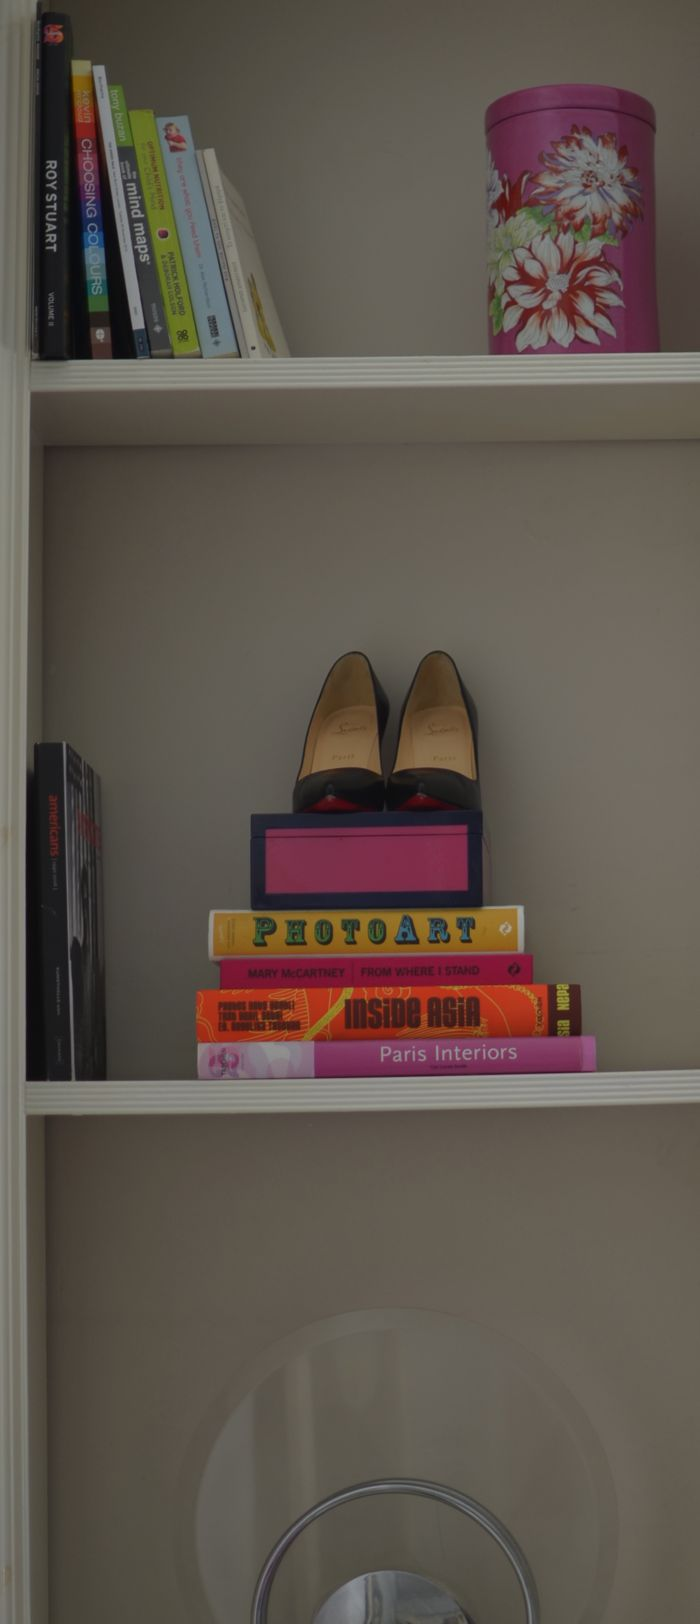 Christian Louboutin Pigalle pumps, books